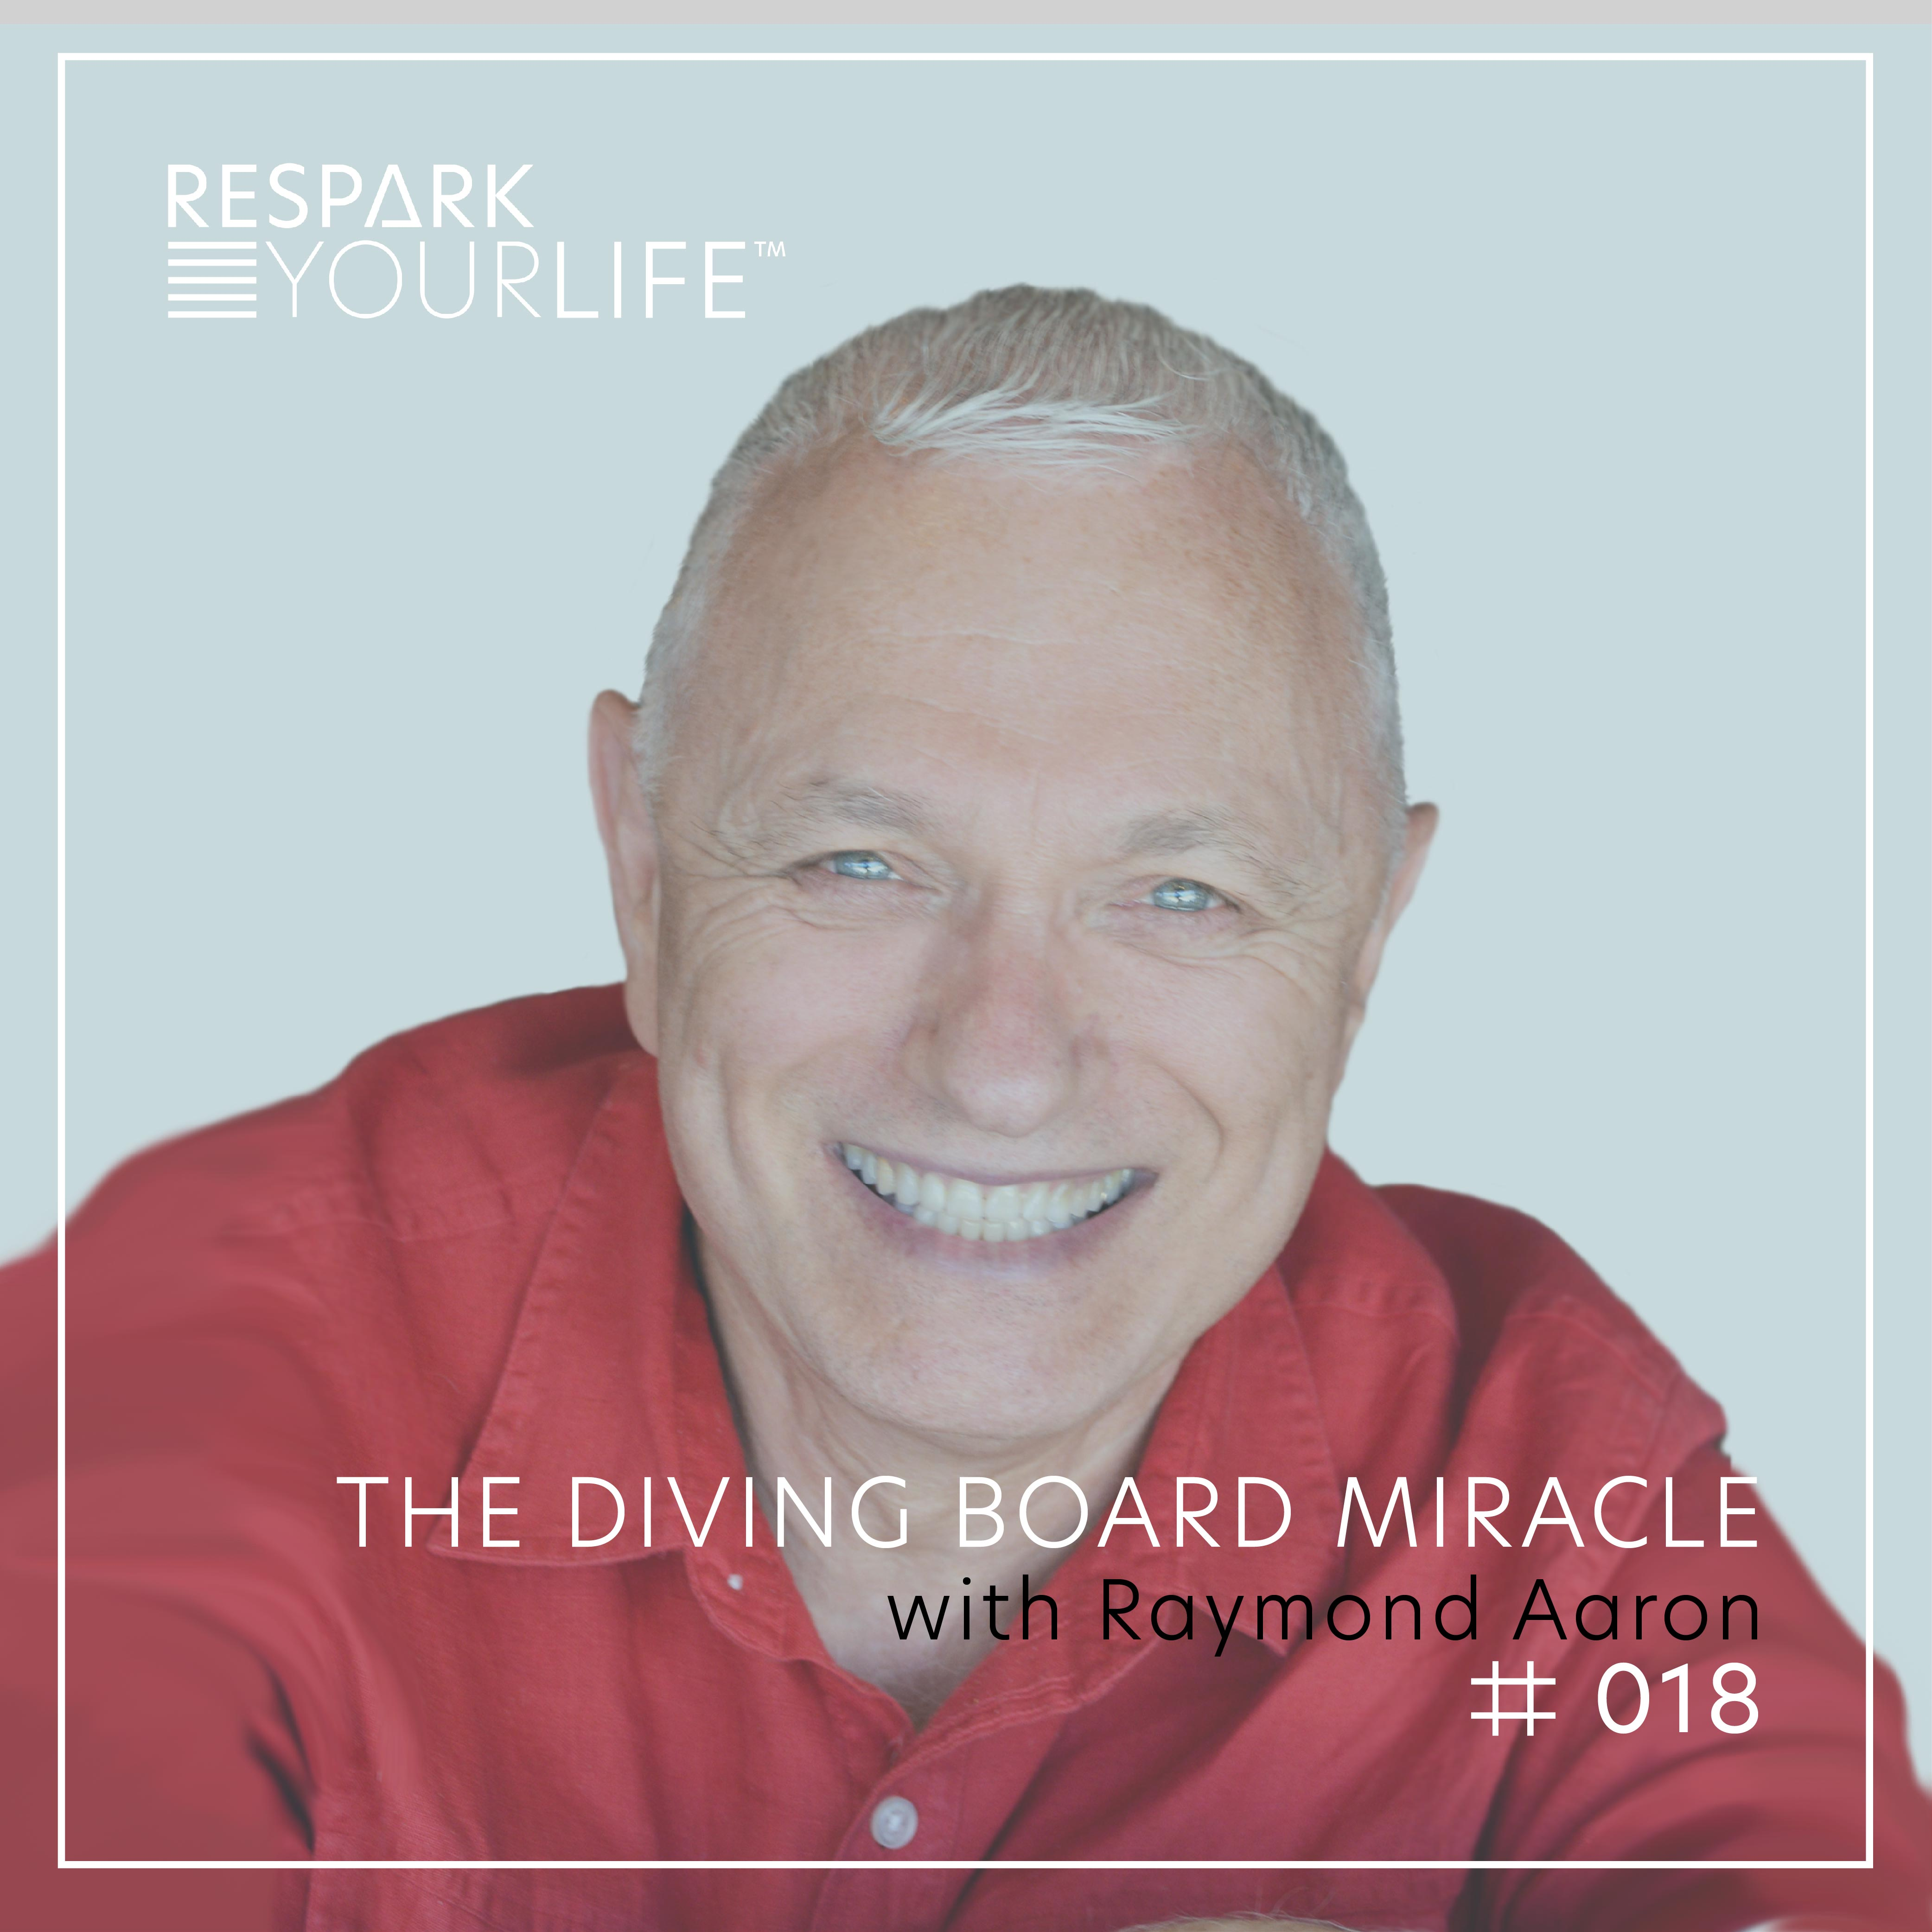 The Diving Board Miracle with Raymond Aaron